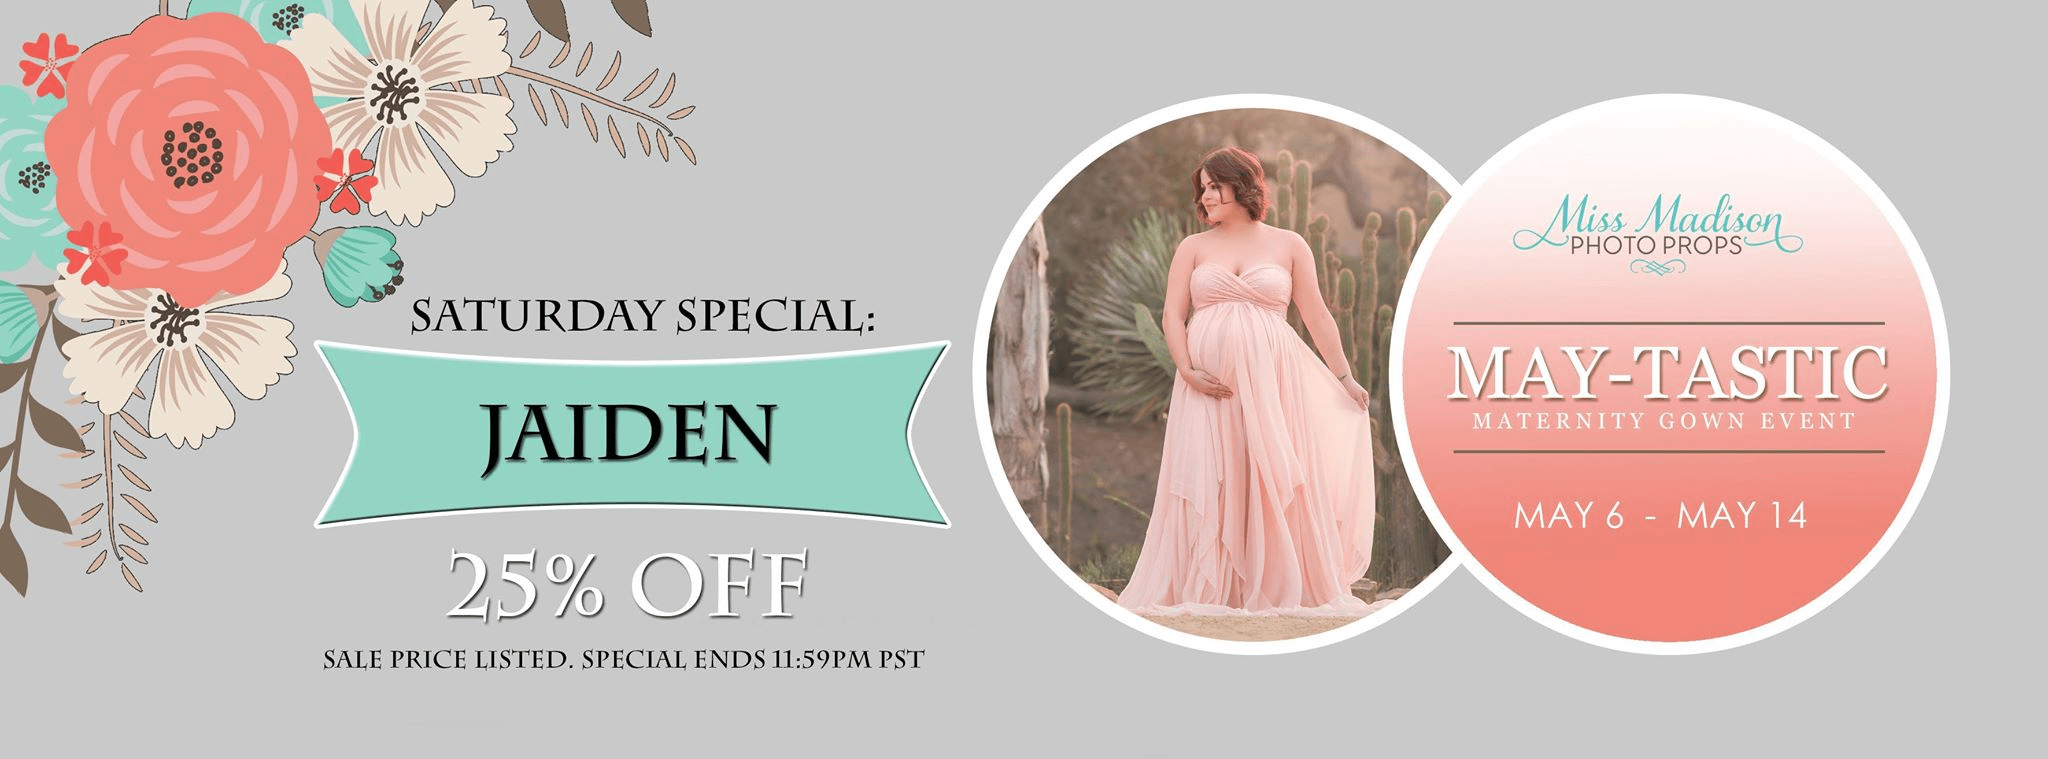 Maternity gown for photoshoot, maternity dress photography, tiered chiffon maternity dress, maternity gown sale